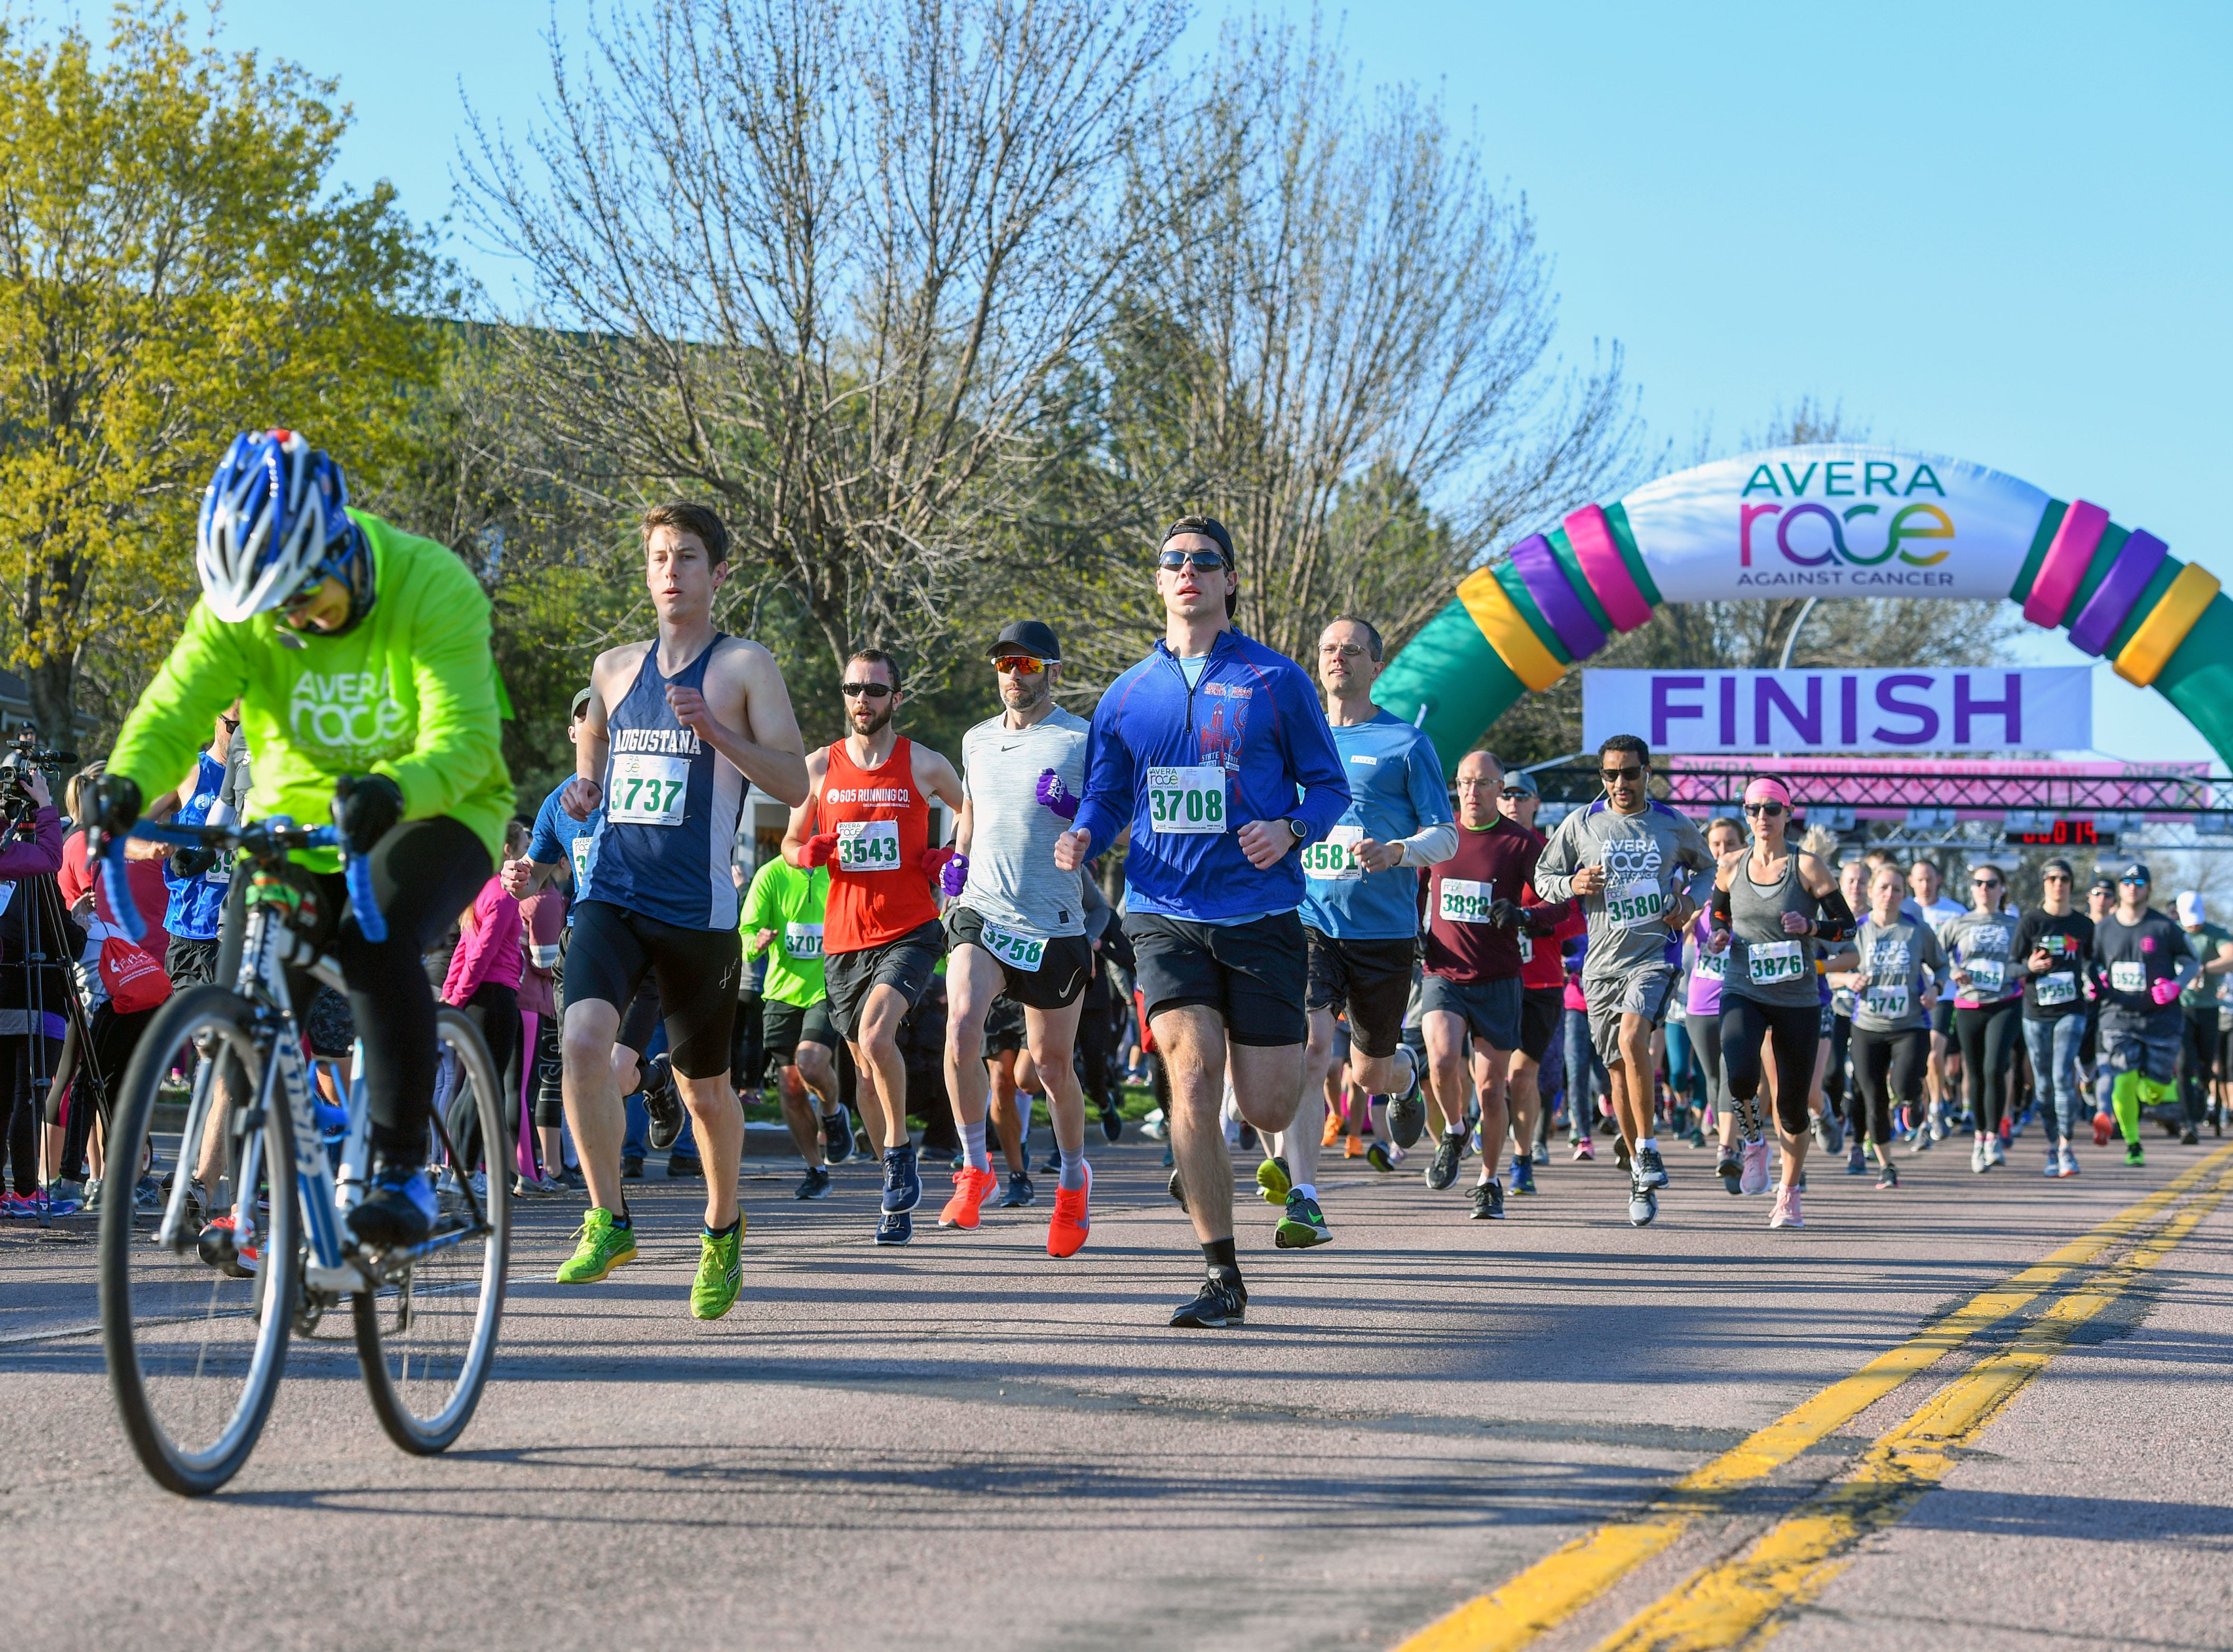 Participants kick off the 10K race at the 31st Avera Health Race Against Cancer on Saturday morning, May 11, in Sioux Falls.